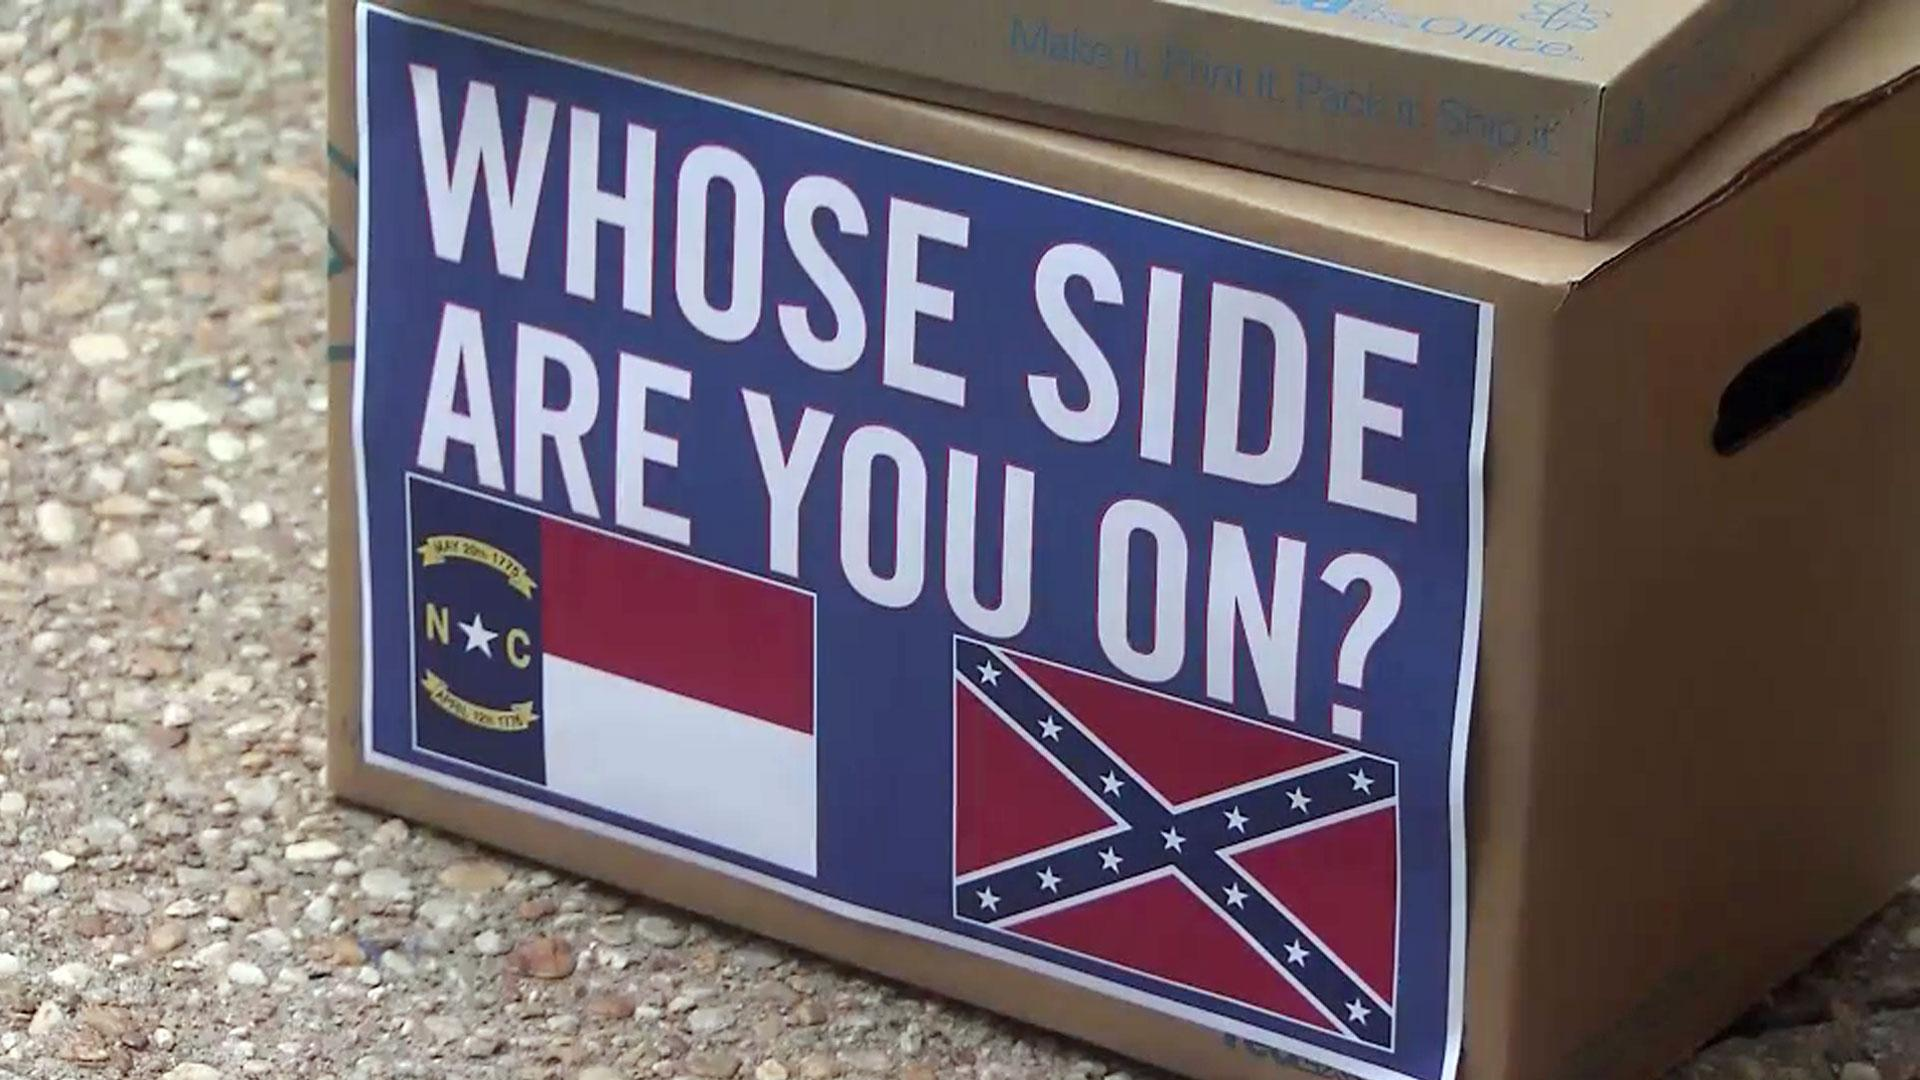 Quick anger, little action on Confederate plates in NC